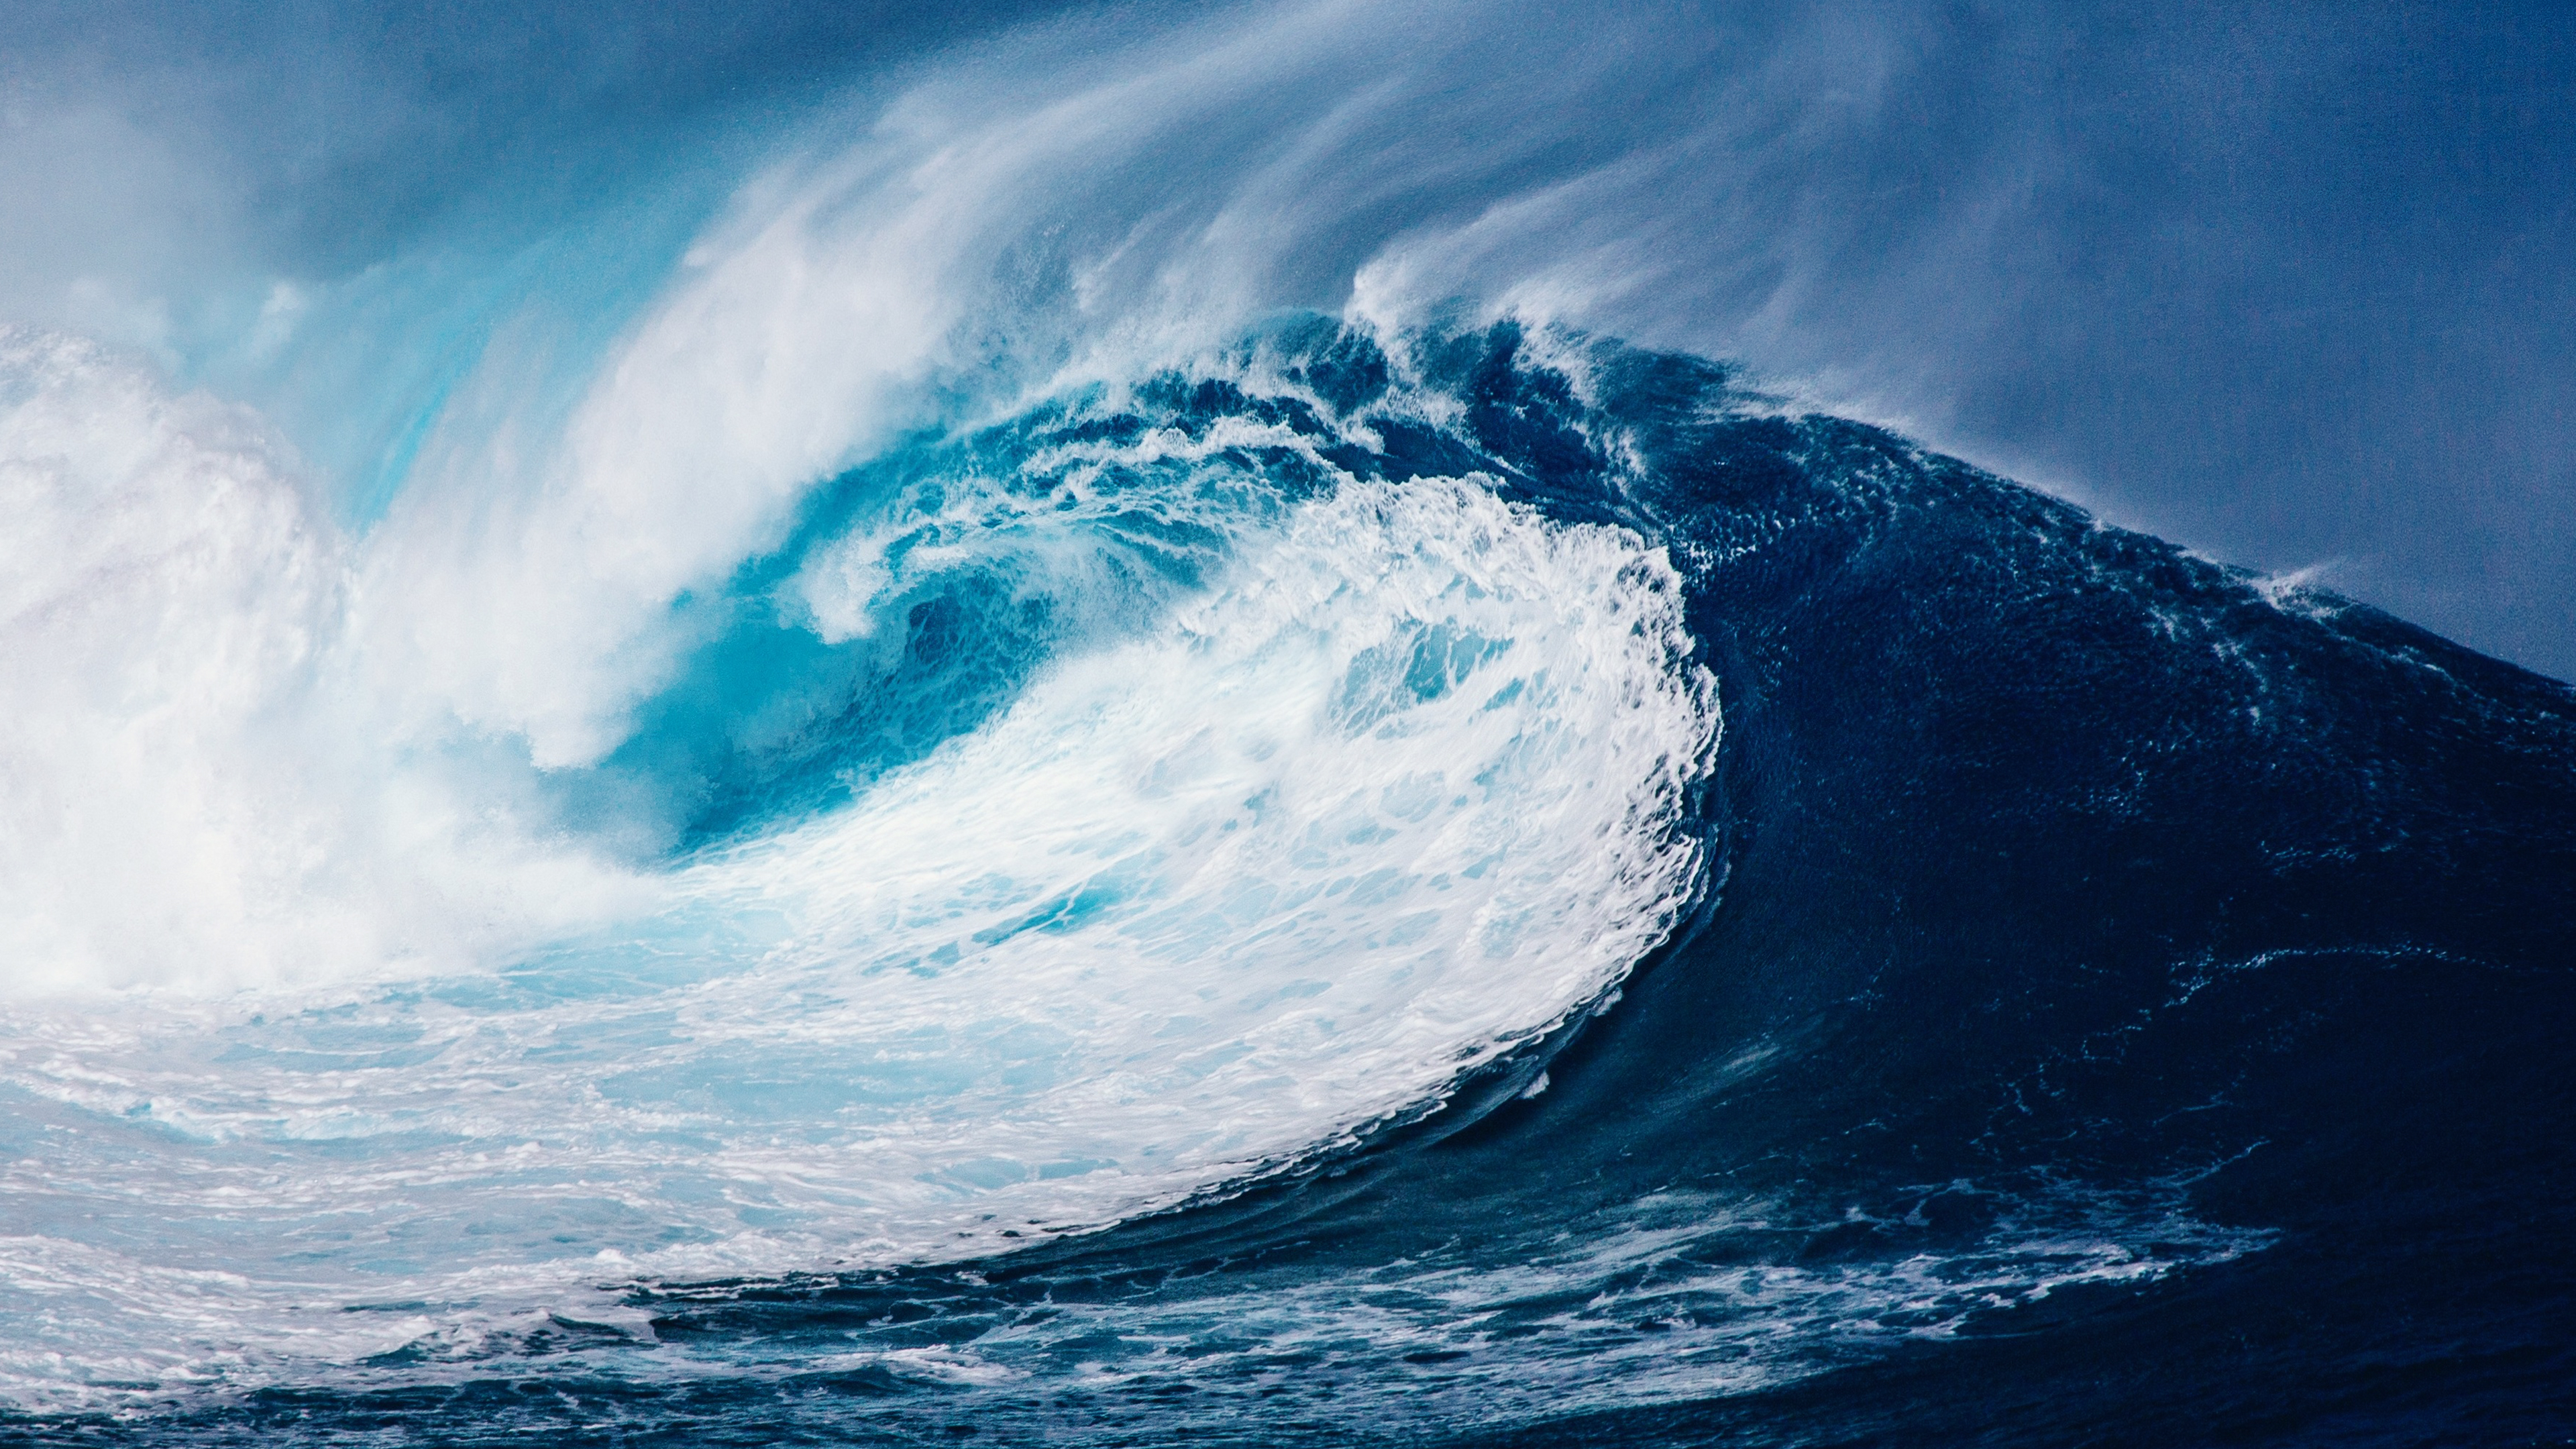 Free mega wave chromebook wallpaper ready for download - Wave pics wallpaper ...